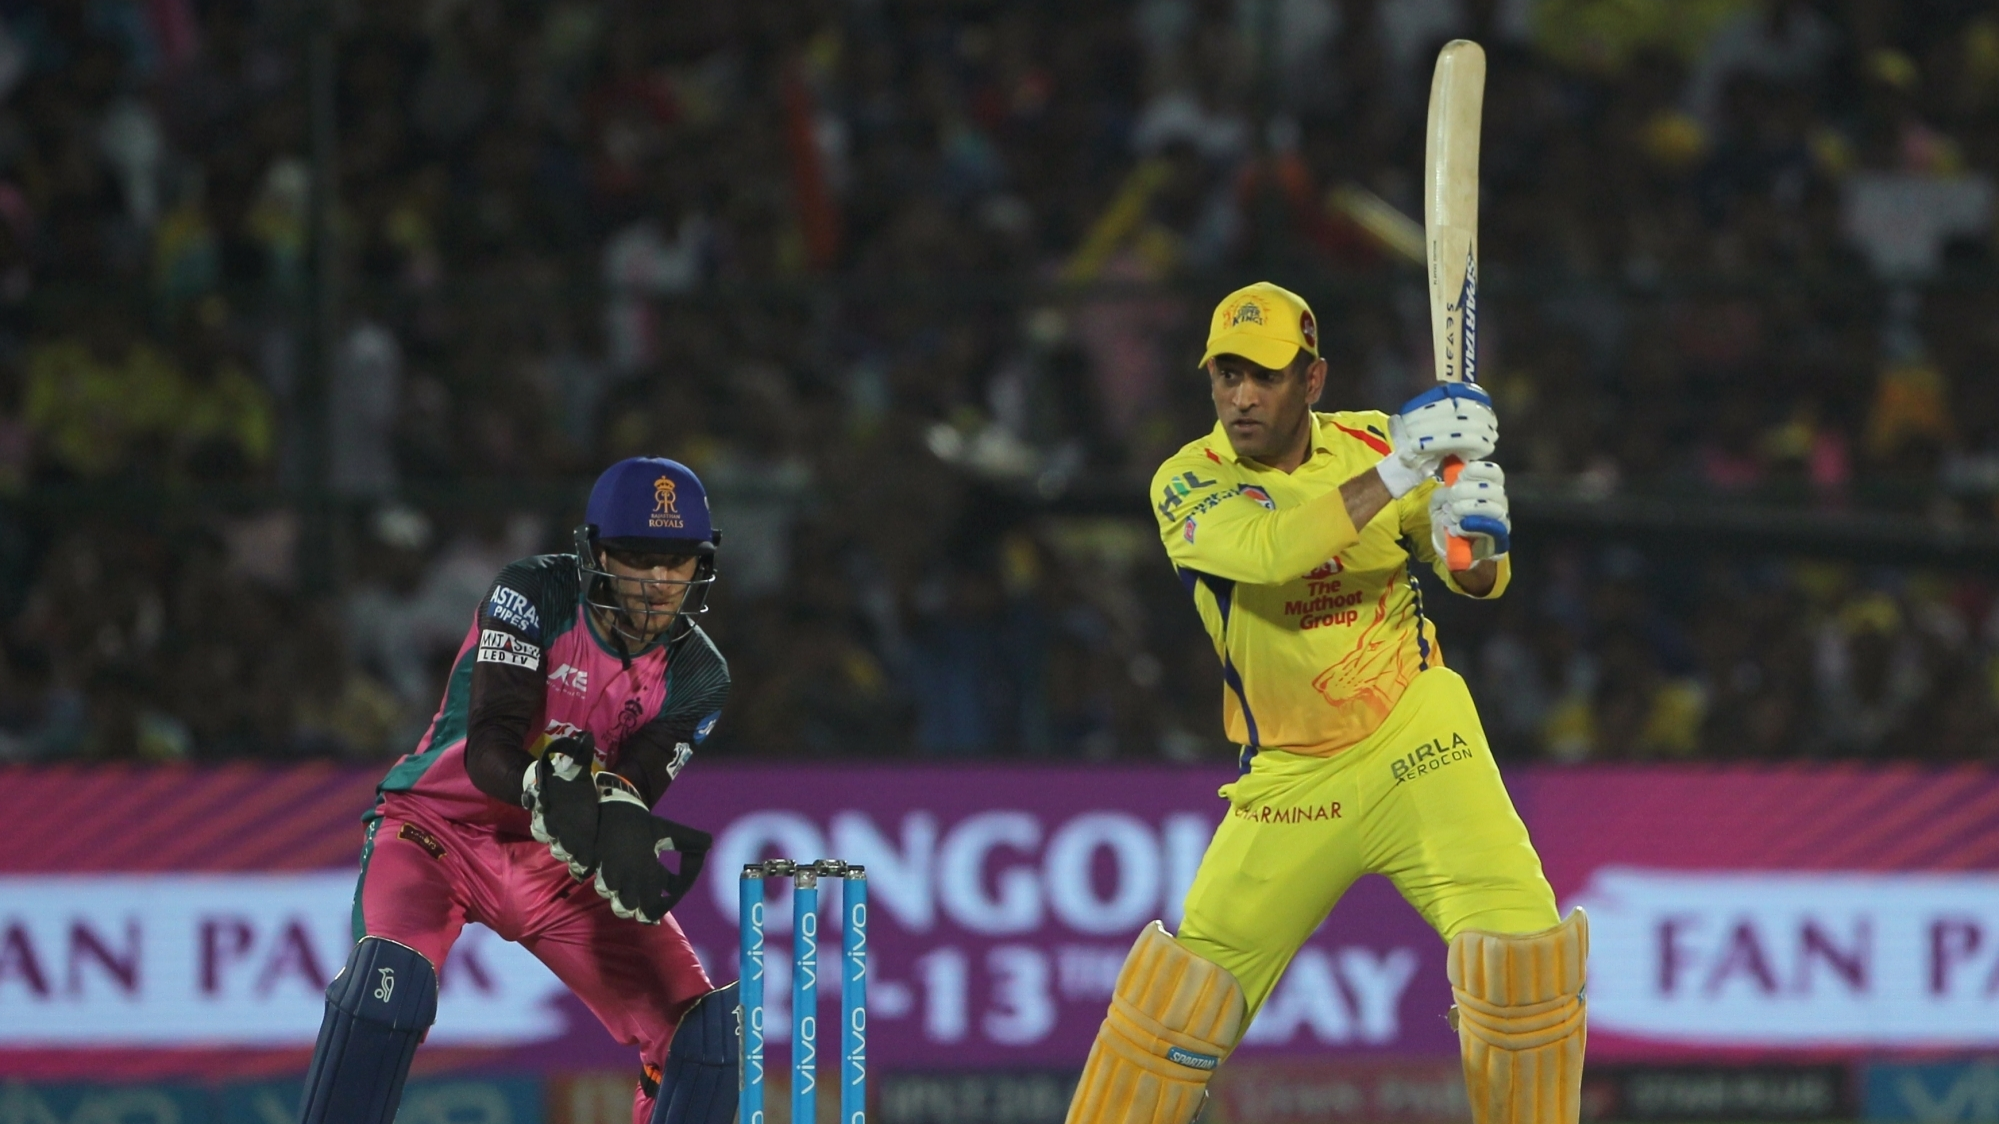 IPL 2018: Stephen Fleming speaks about MS Dhoni's rich batting form this season